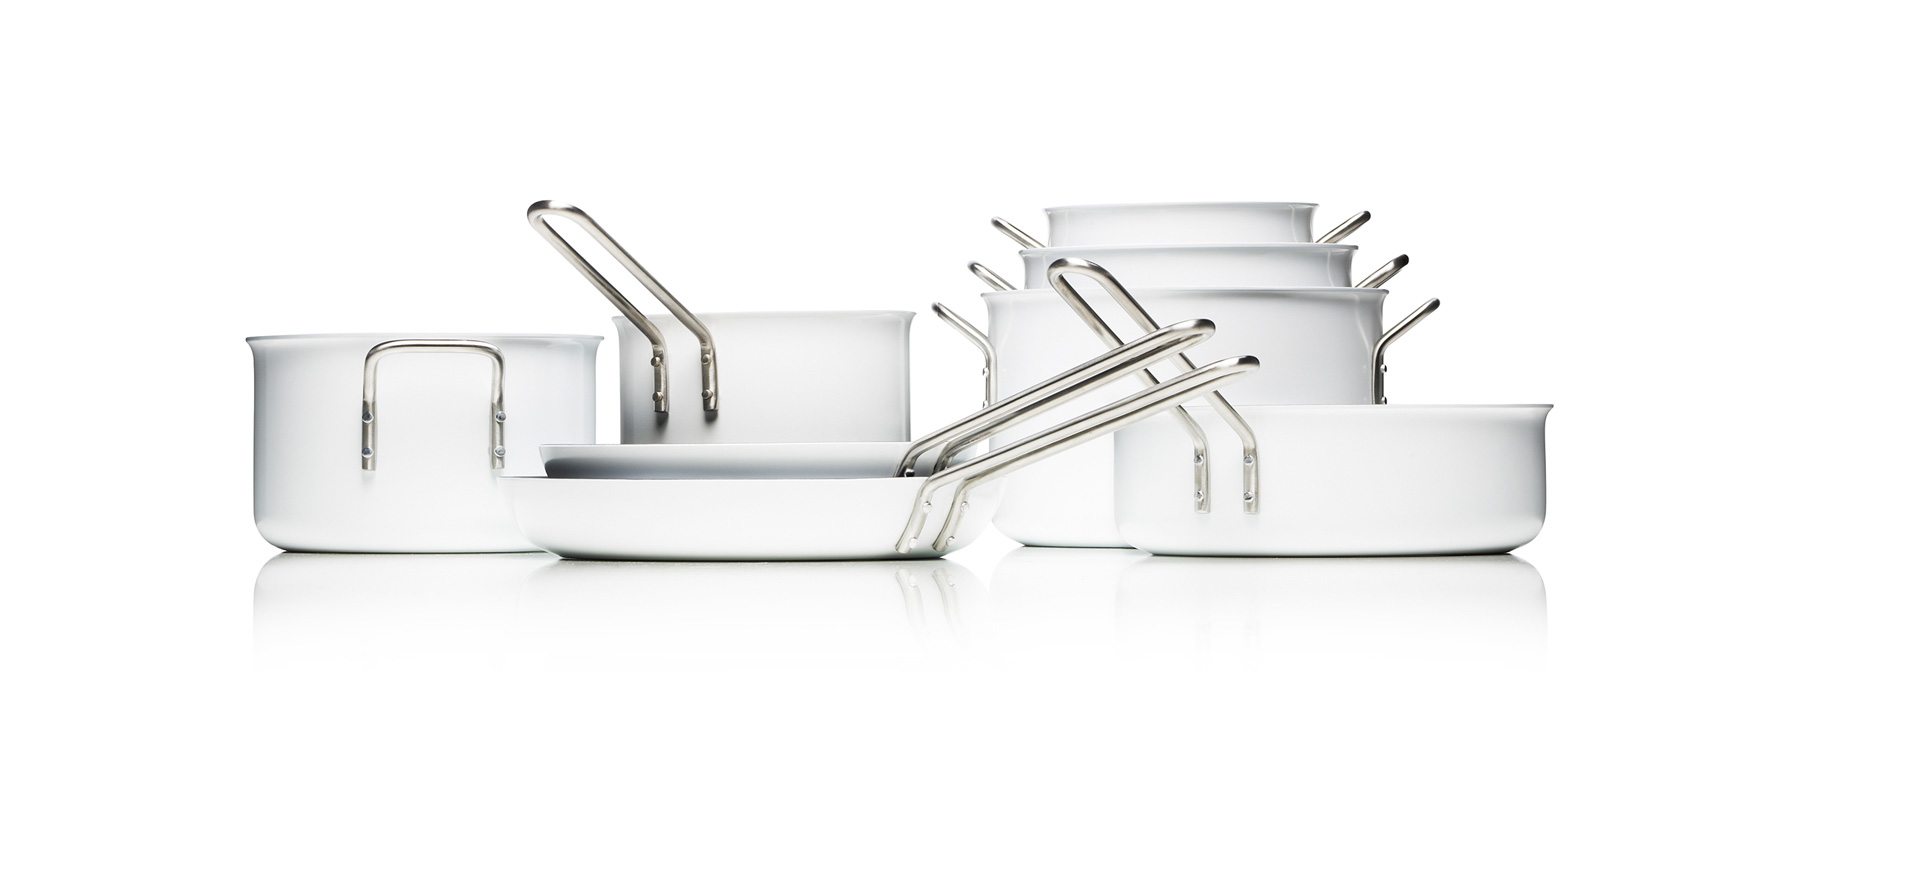 Sauté pan - White line, Ceramic coating - 256524